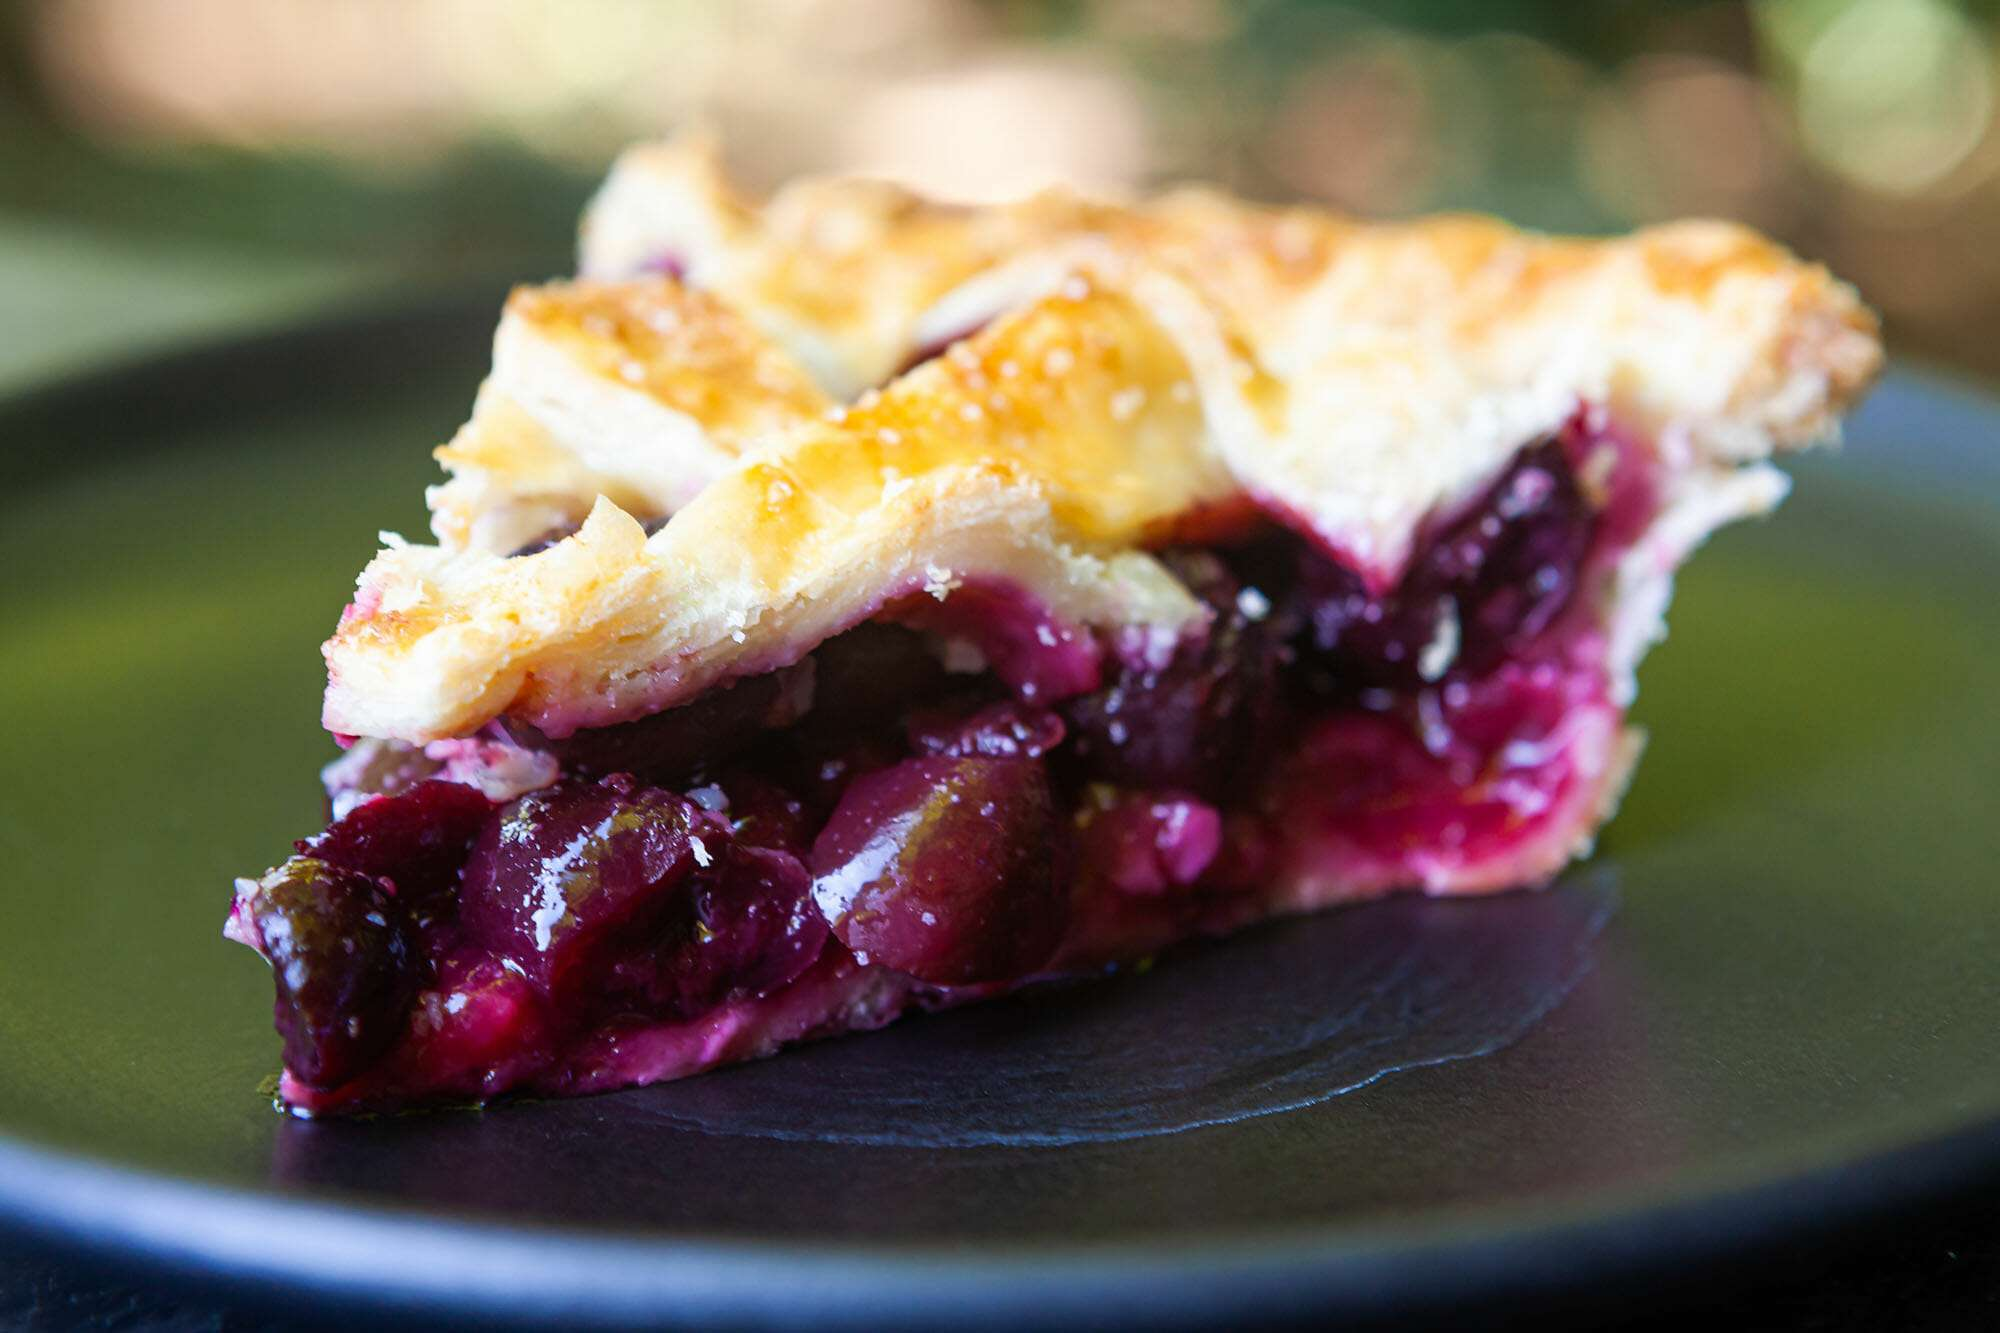 A slice of a cherry pie with a fresh cherry filling visible on the plate.